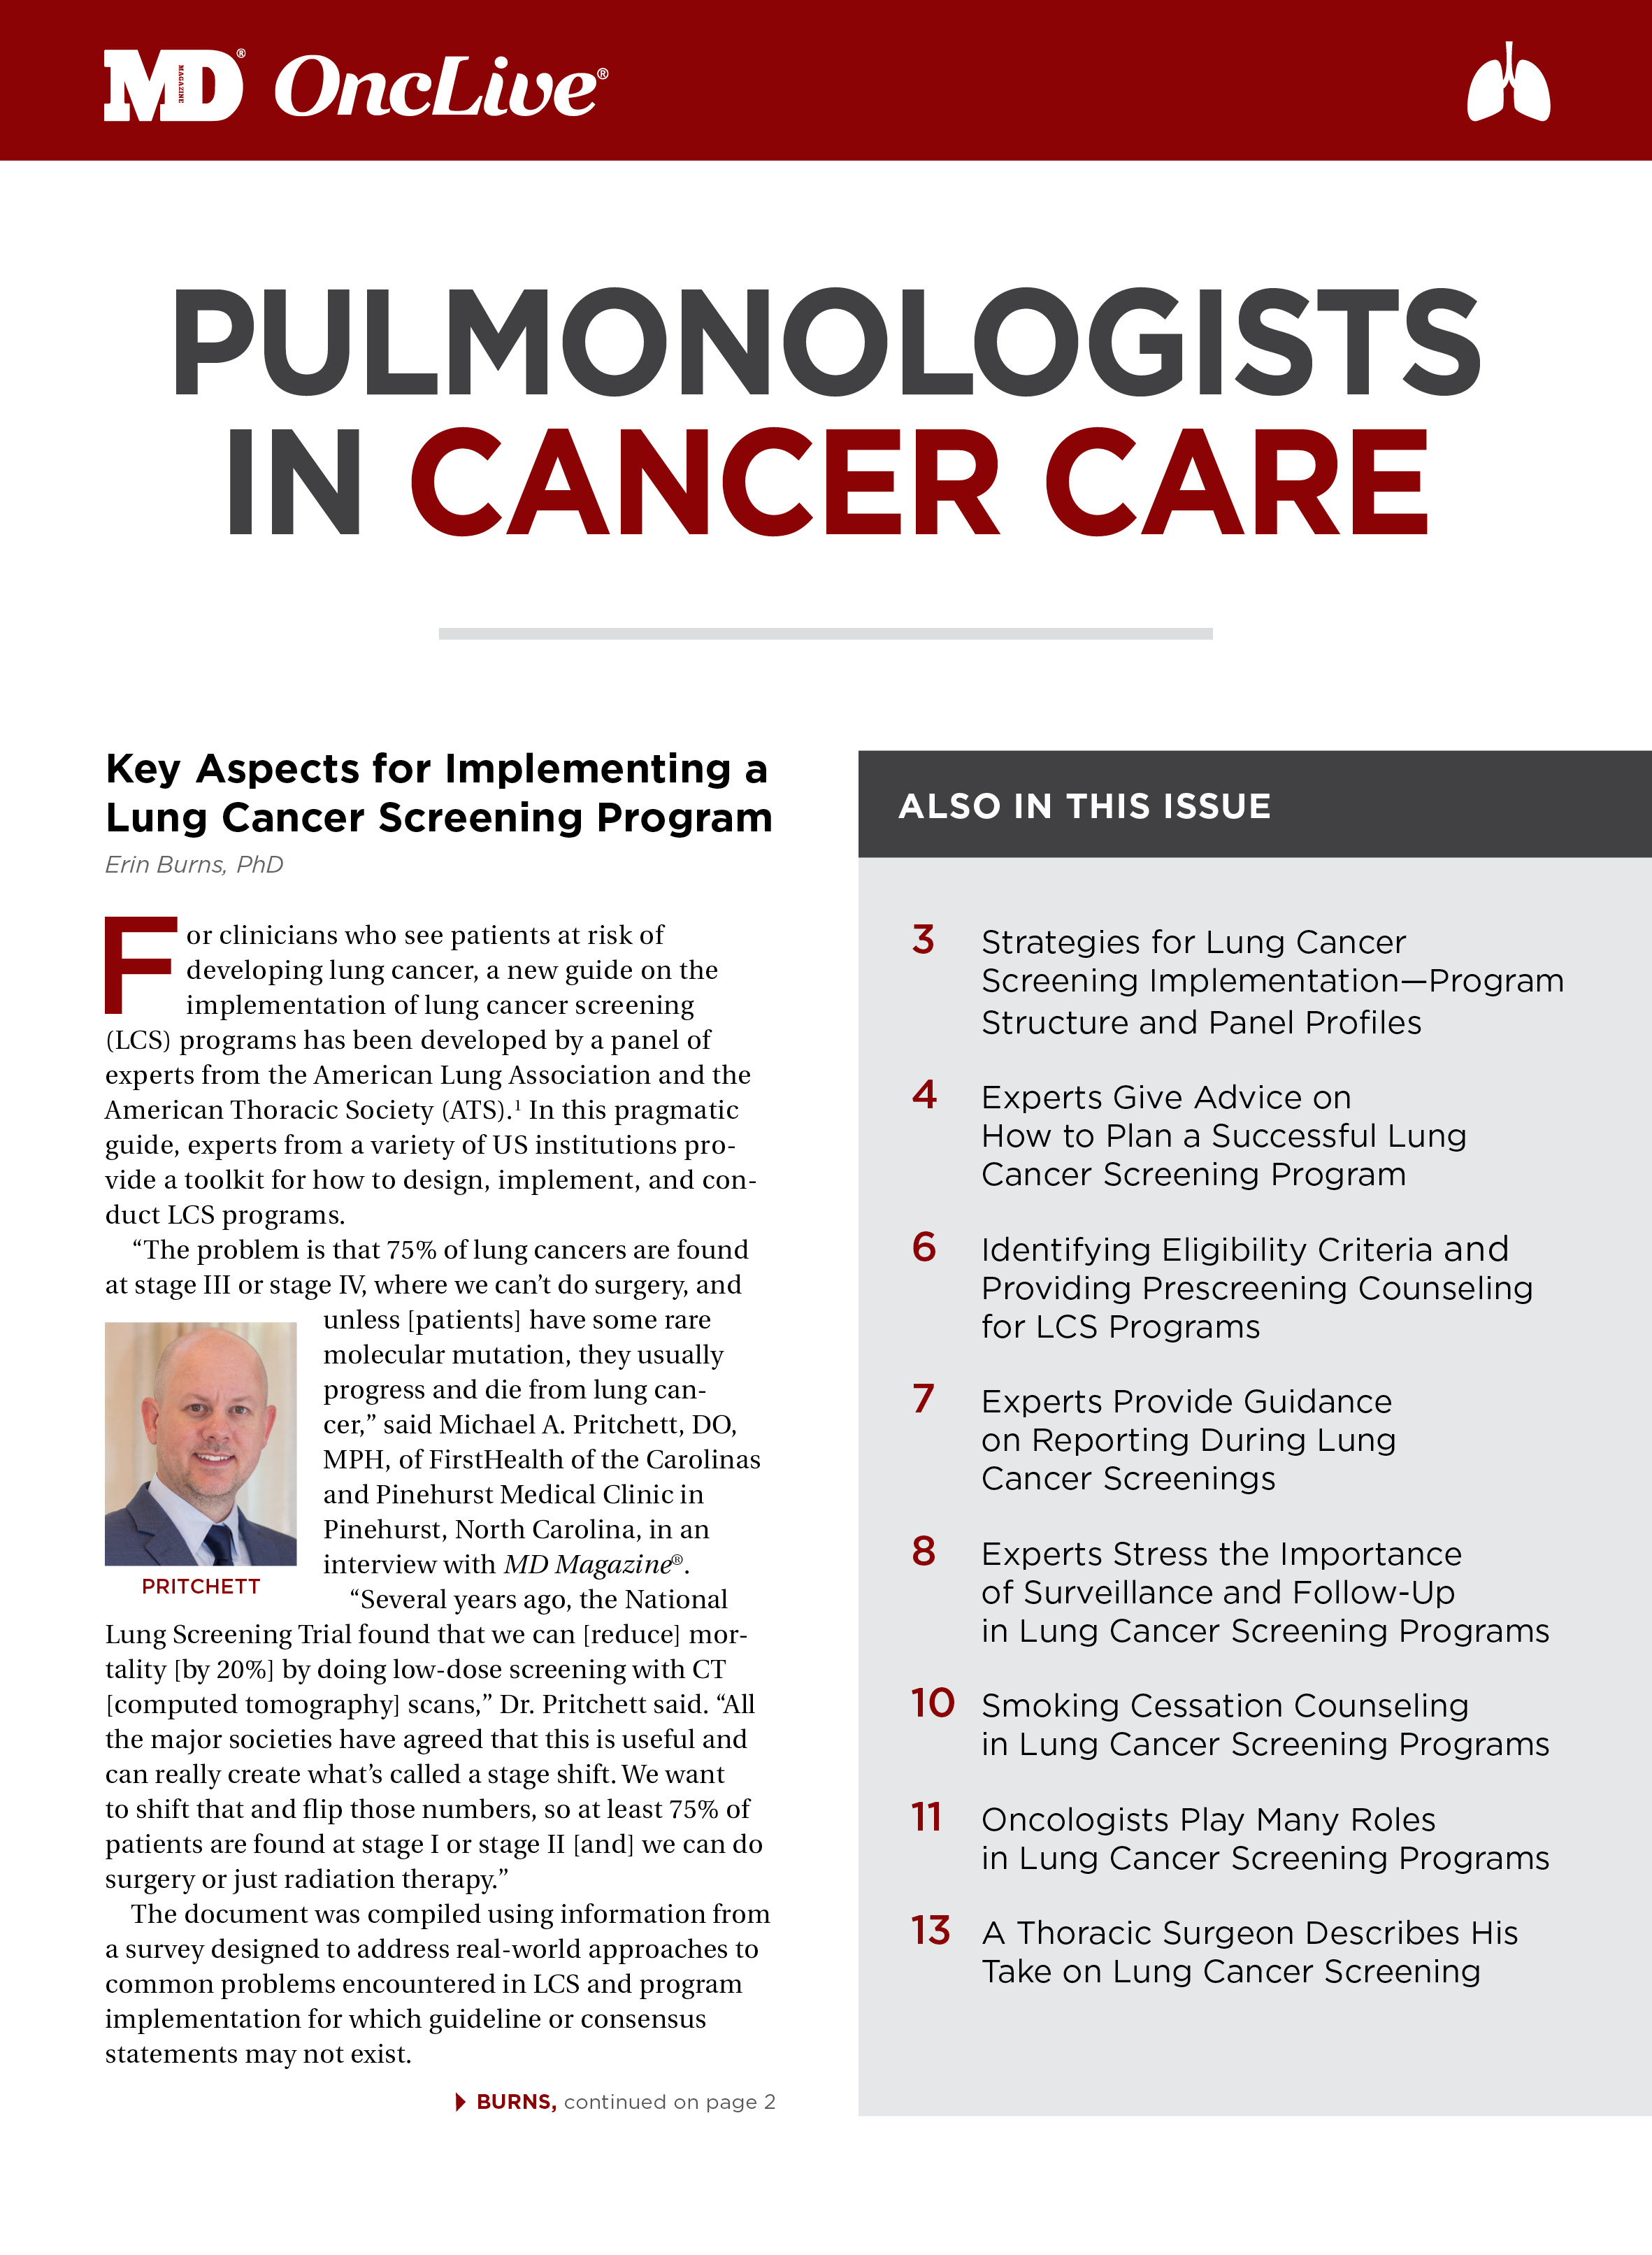 Pulmonologists in Cancer Care